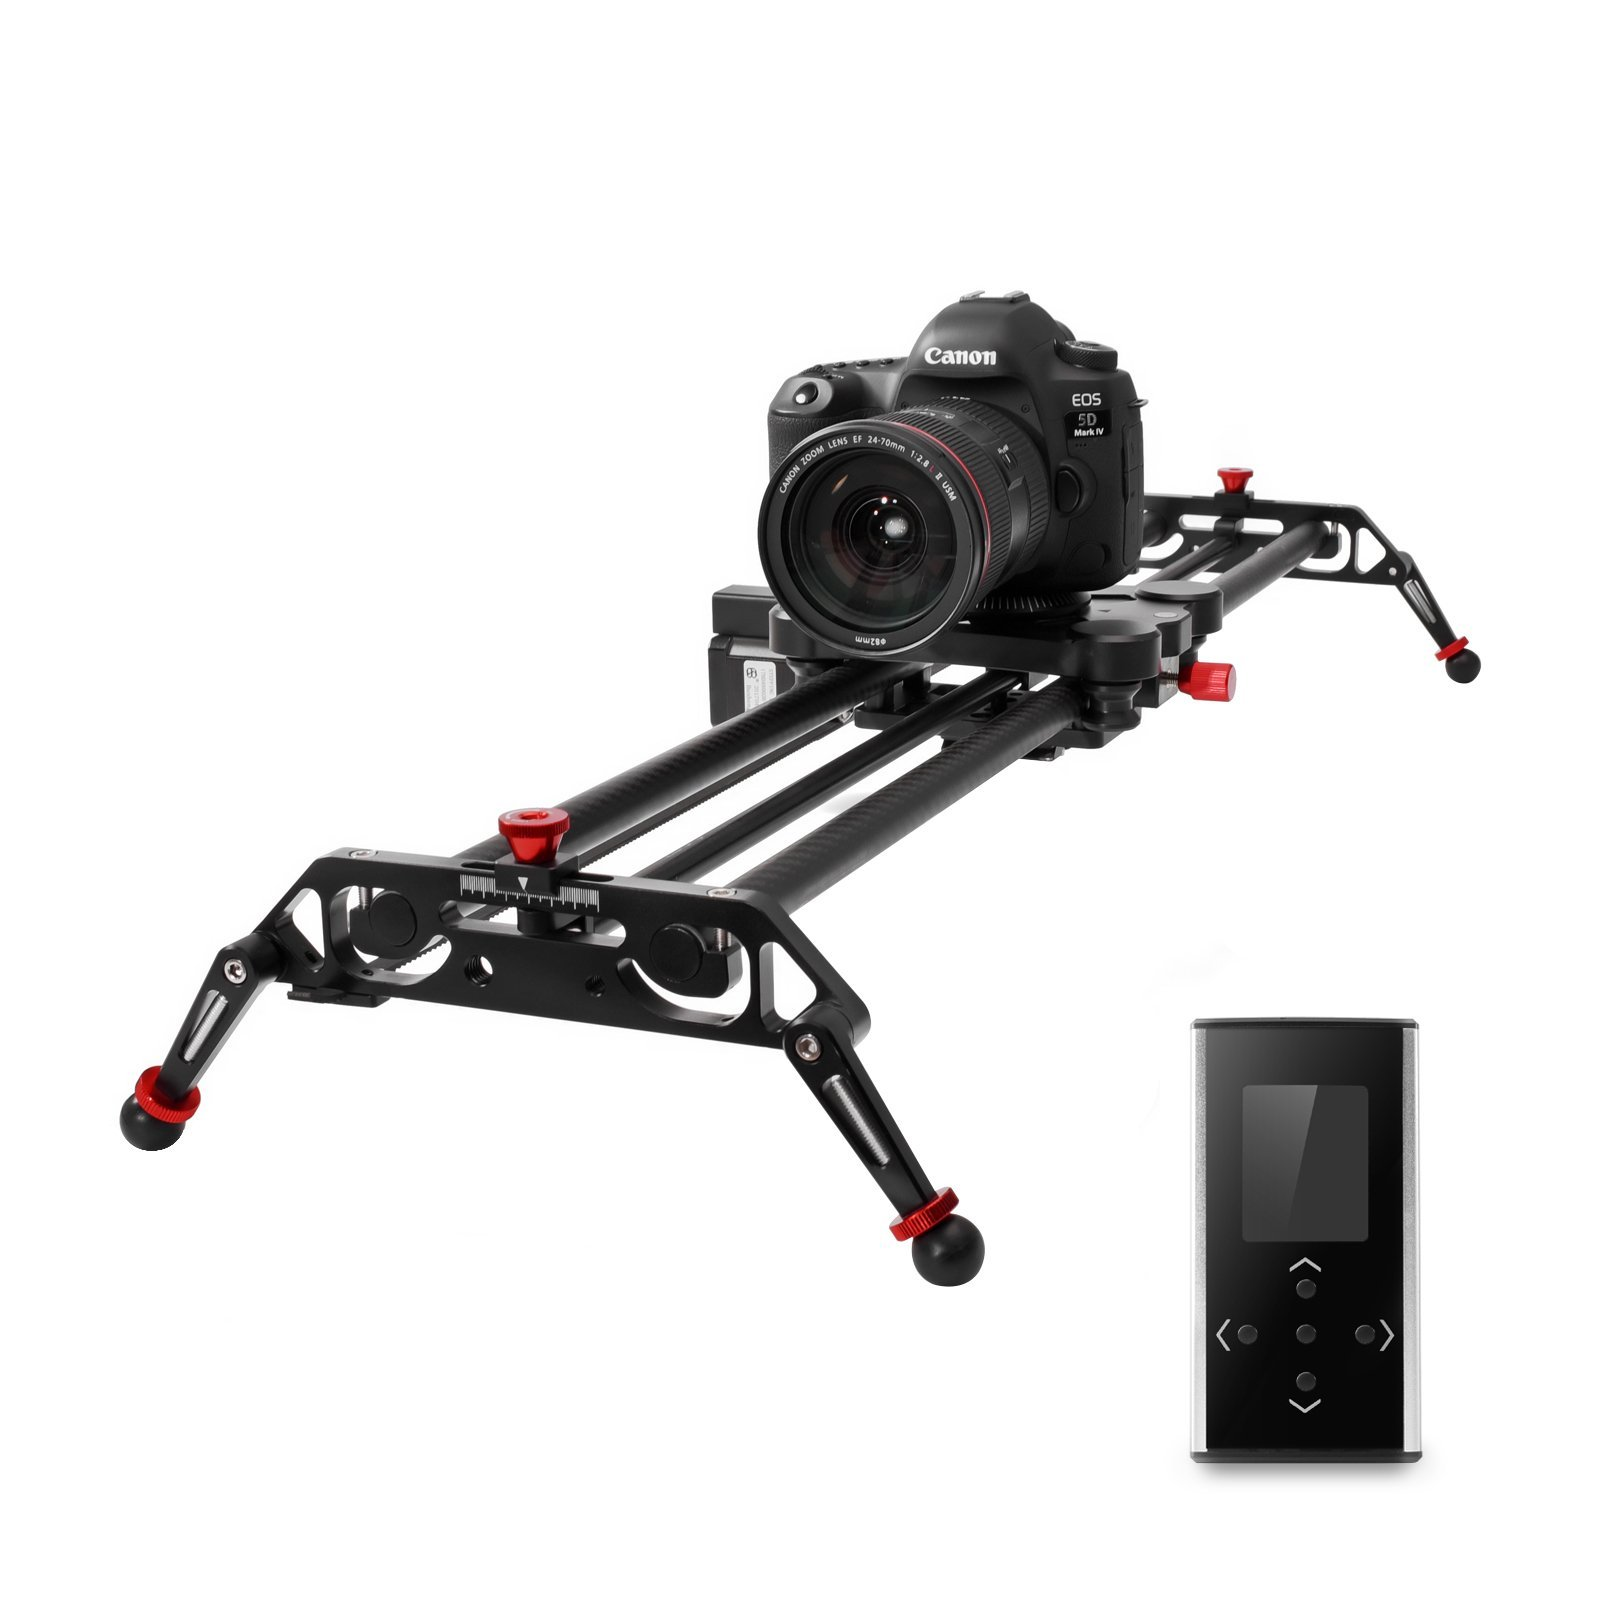 GVM Camera Slider 31'' DSLR Dolly Track Parallax Sliders May Motorized Time Lapse and Video Follow Focus Shot and 120 Wide-angle Shooting